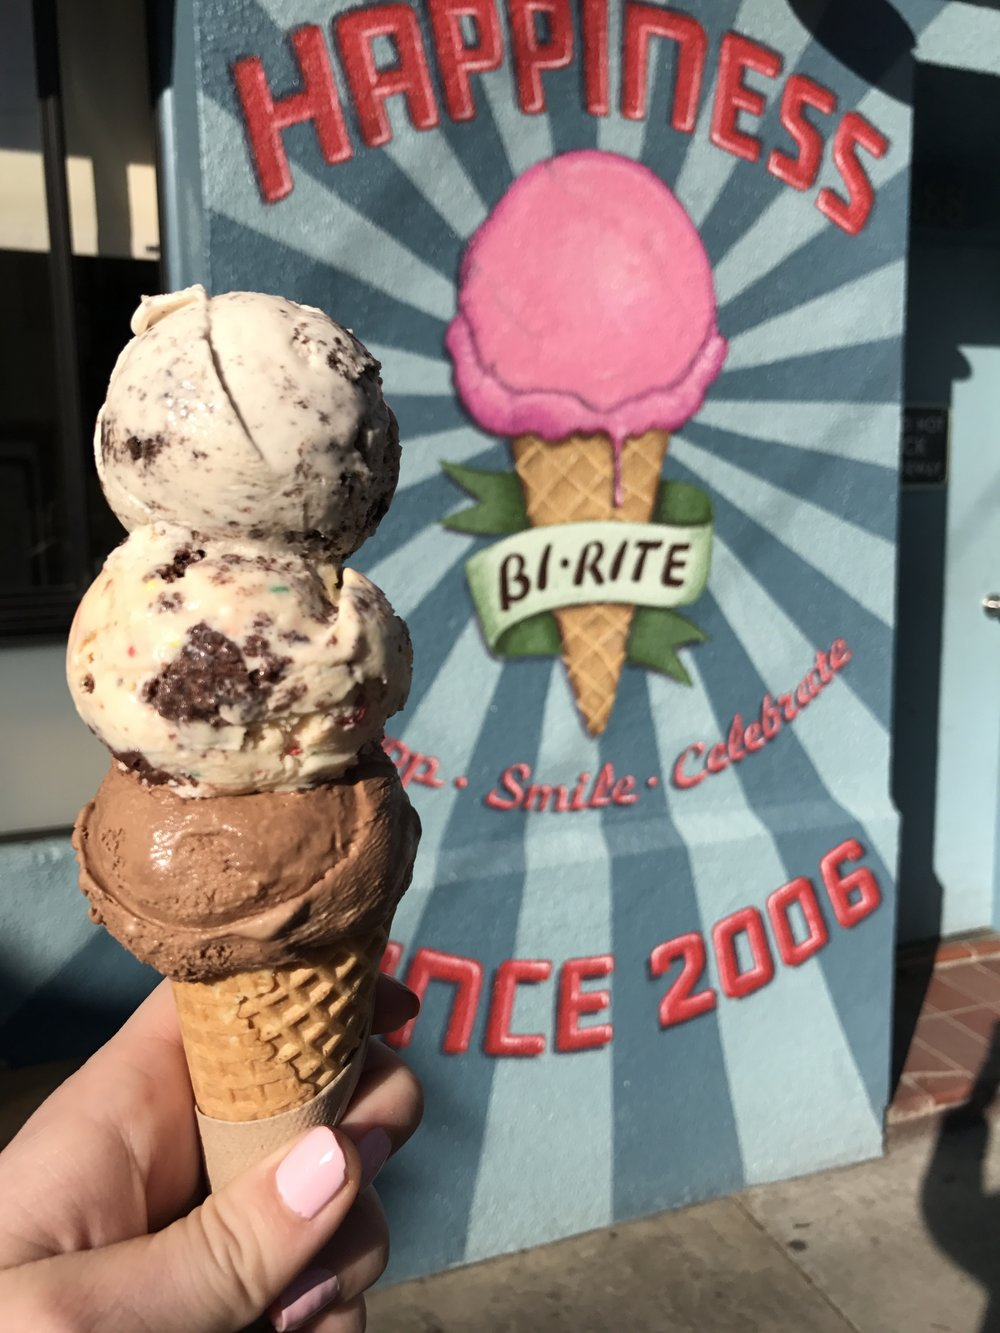 bi-rite Ice Cream - Things to do in San Francisco